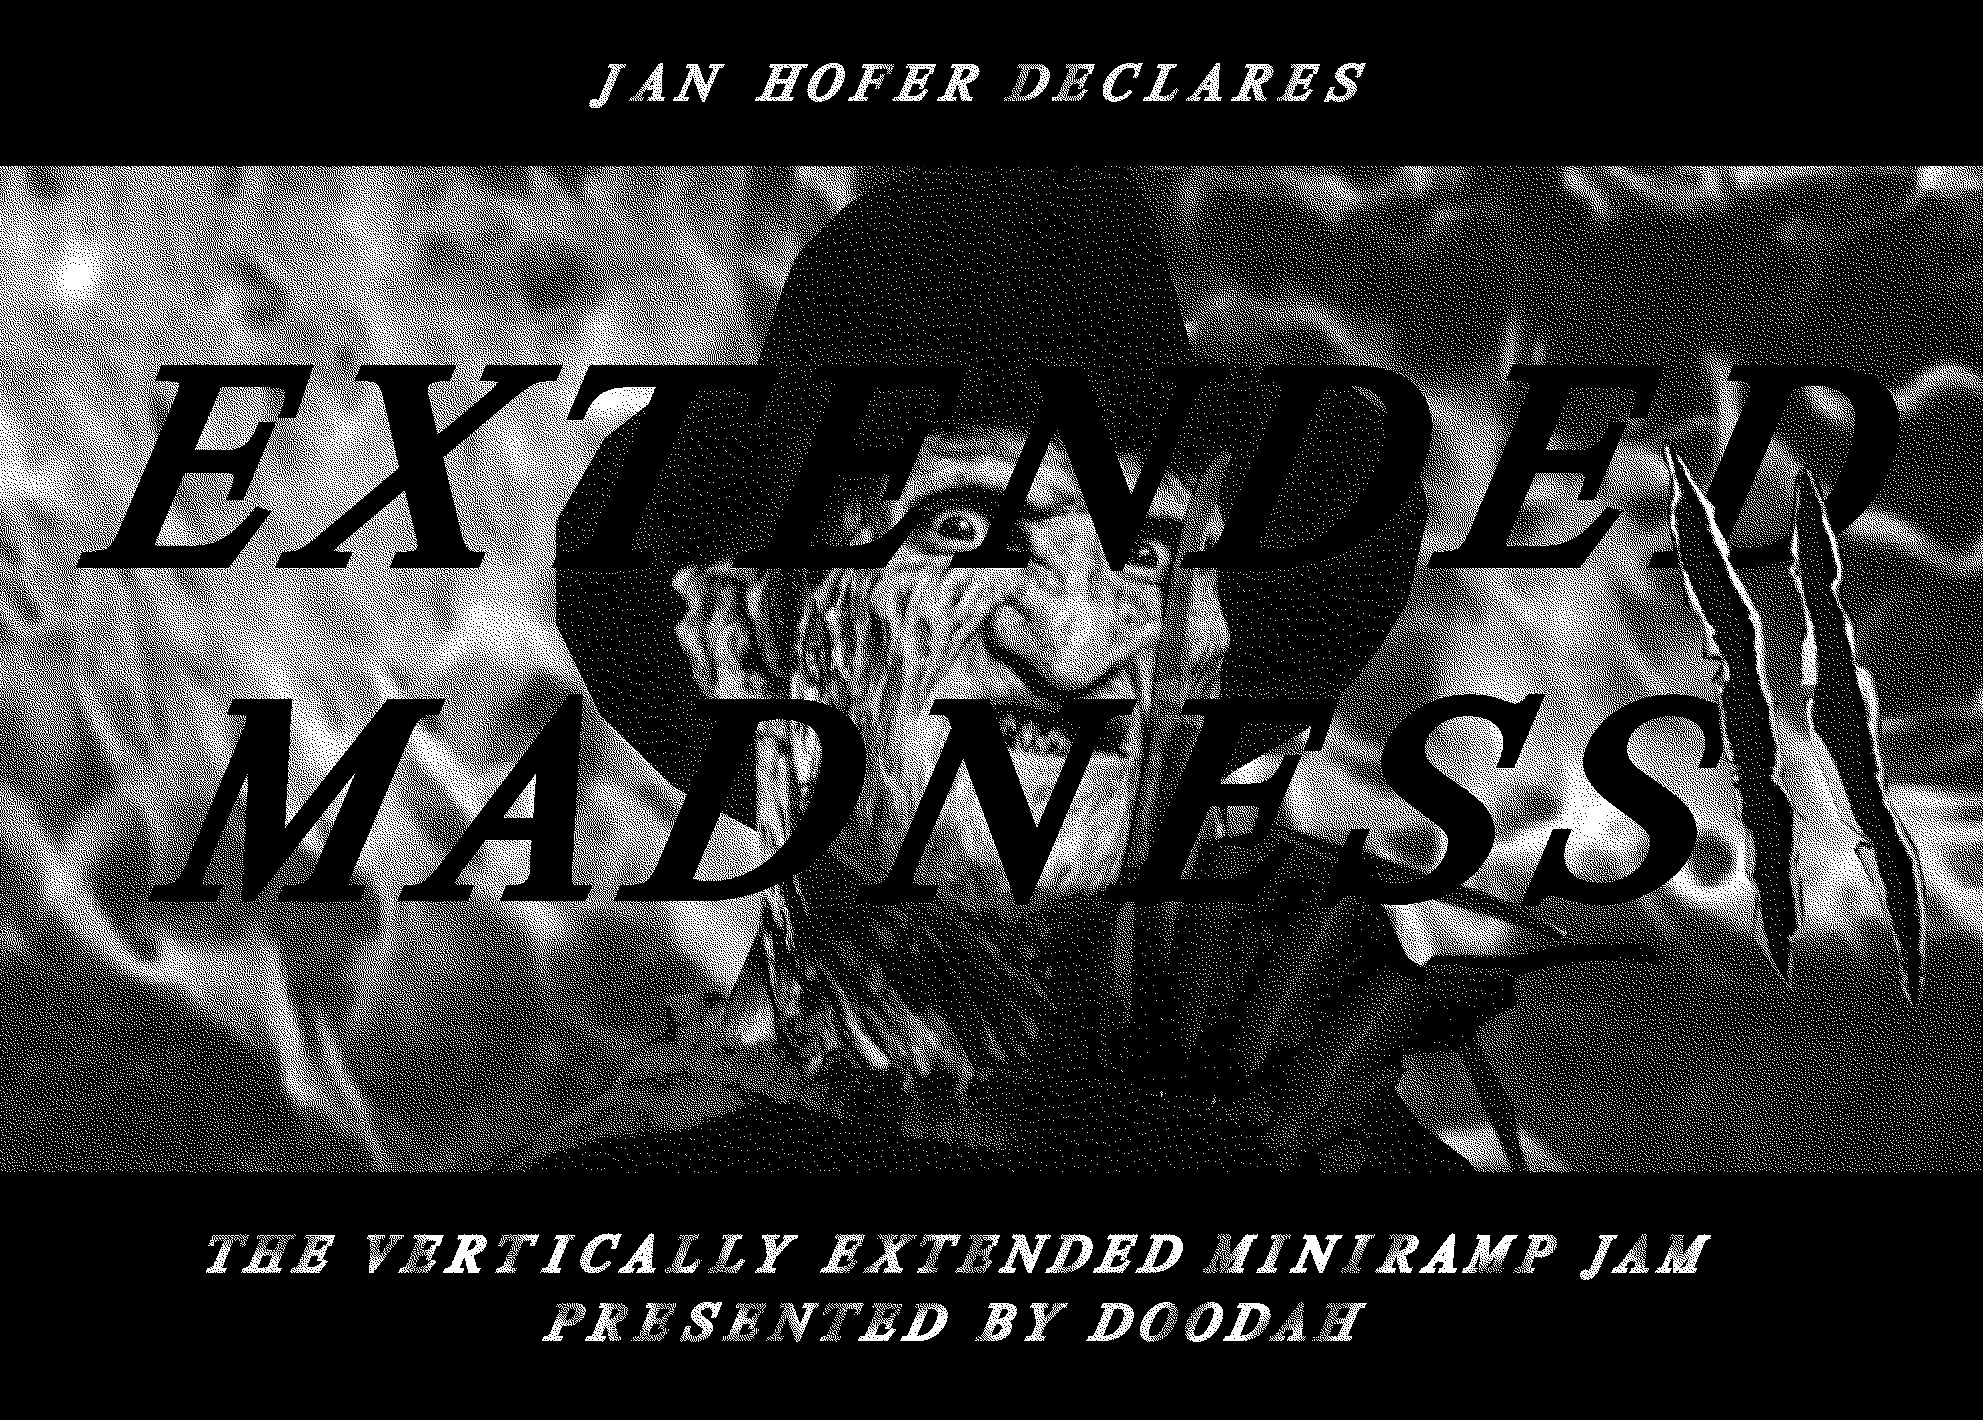 A Night of Drinks, Music and Vertically Extended Miniramp Shredding.  From 5pm SKATE SESSION  At 8pm EXTENDED MADNESS with Cash for Tricks and loud live music by The Destroyer Band  After 9pm OPEN MINIRAMP AND GOOD VIBES  Proudly supported by:  Official Caps by  http://www.illumate.ch/  Thunder Trucks  http://www.thundertrucks.com/